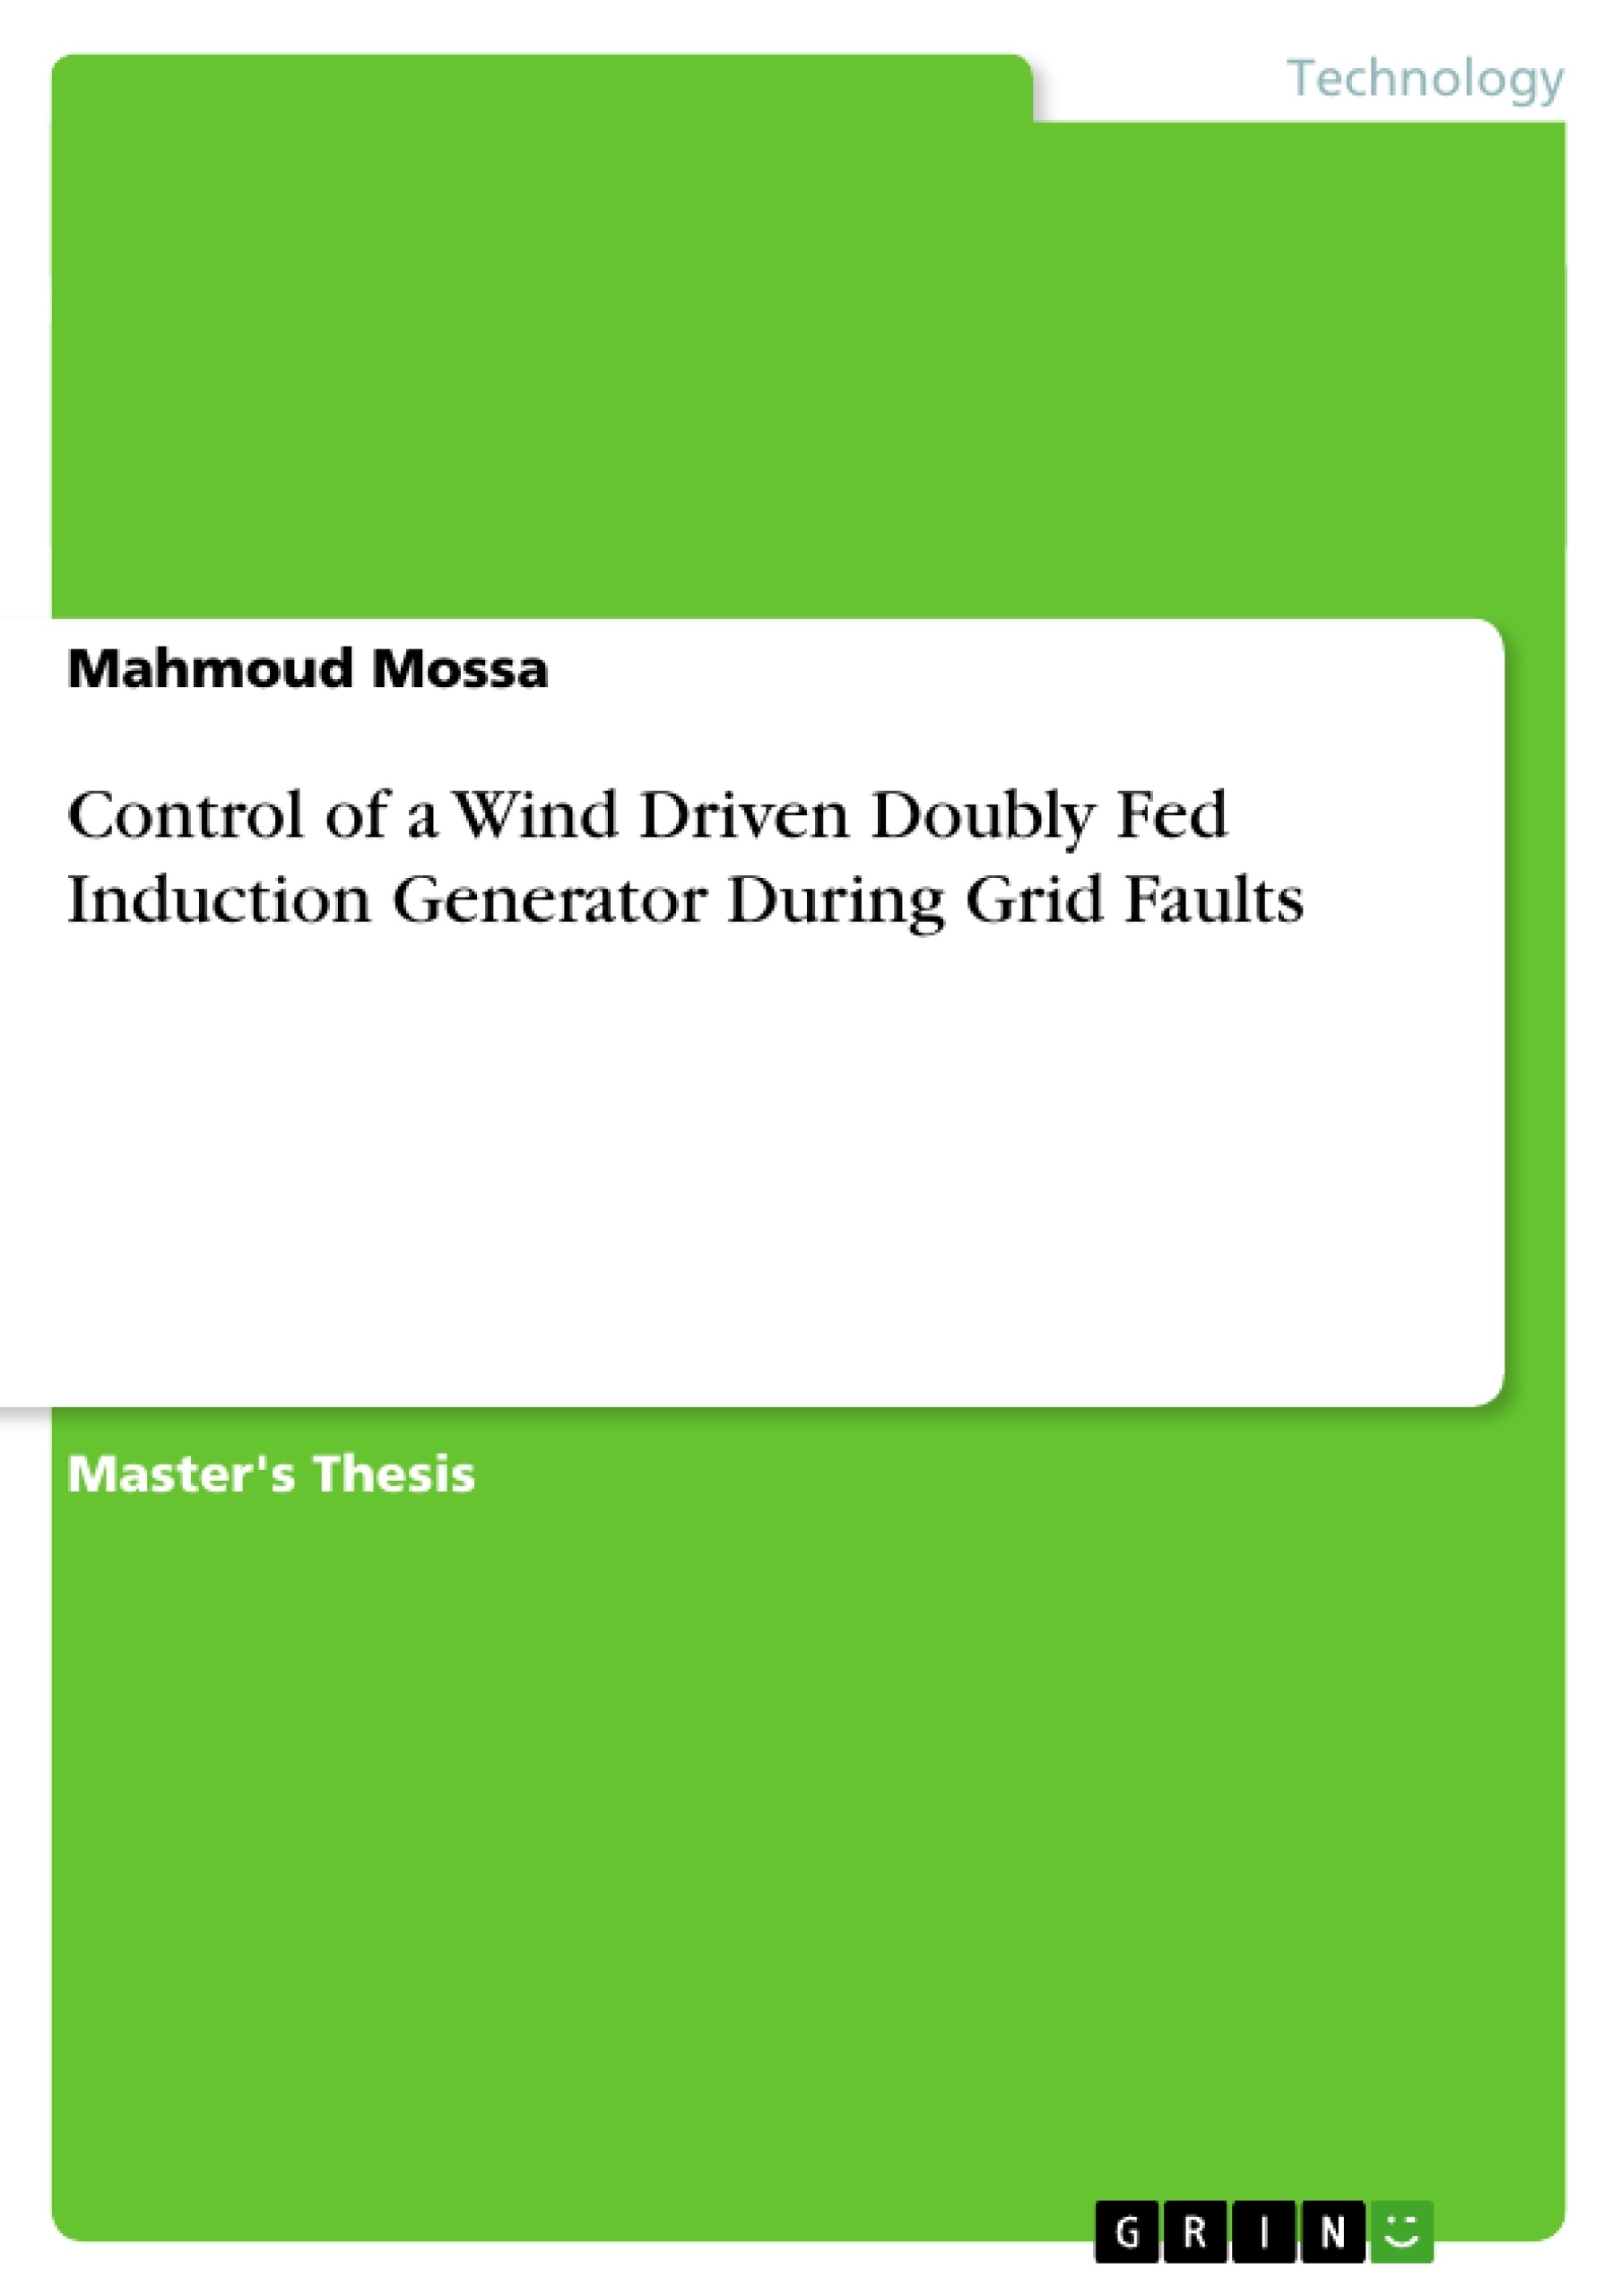 Title: Control of a Wind Driven Doubly Fed Induction Generator During Grid Faults